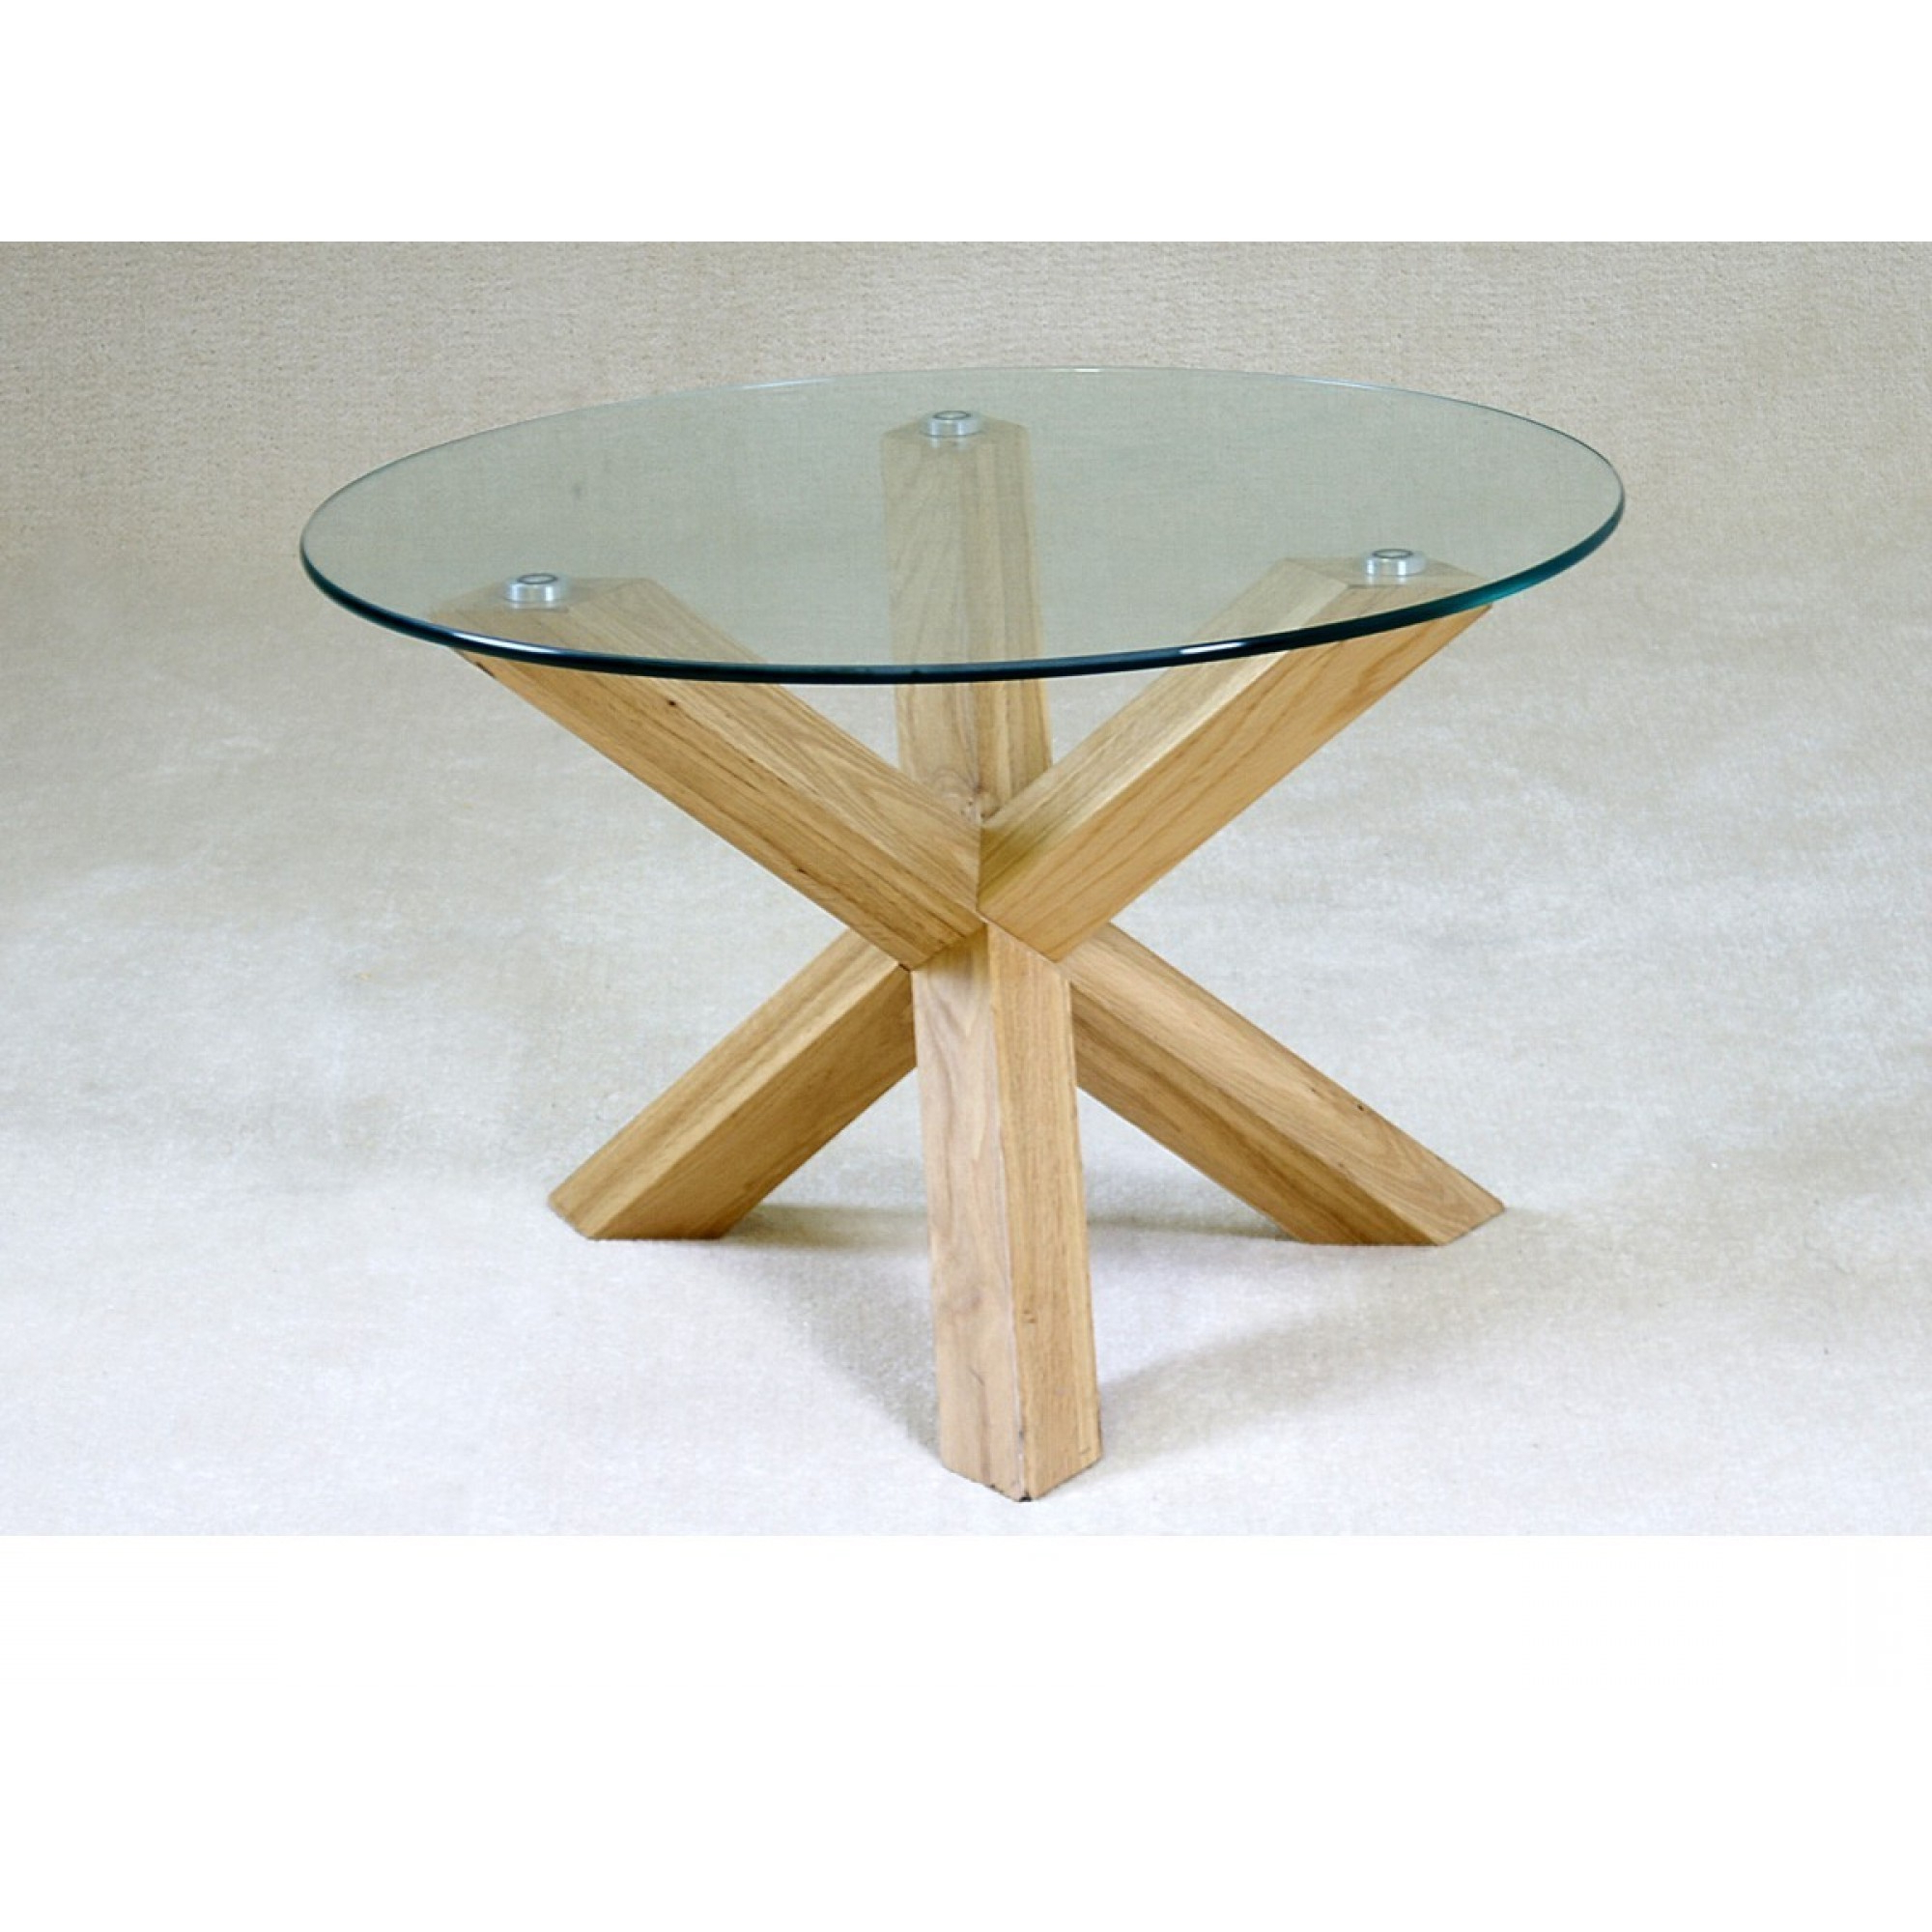 Eames Style Dining Tables With Chromed Leg And Tempered Glass Top with Most Up-to-Date Table Round Glass Coffee With Wood Base Sunroom Top Table